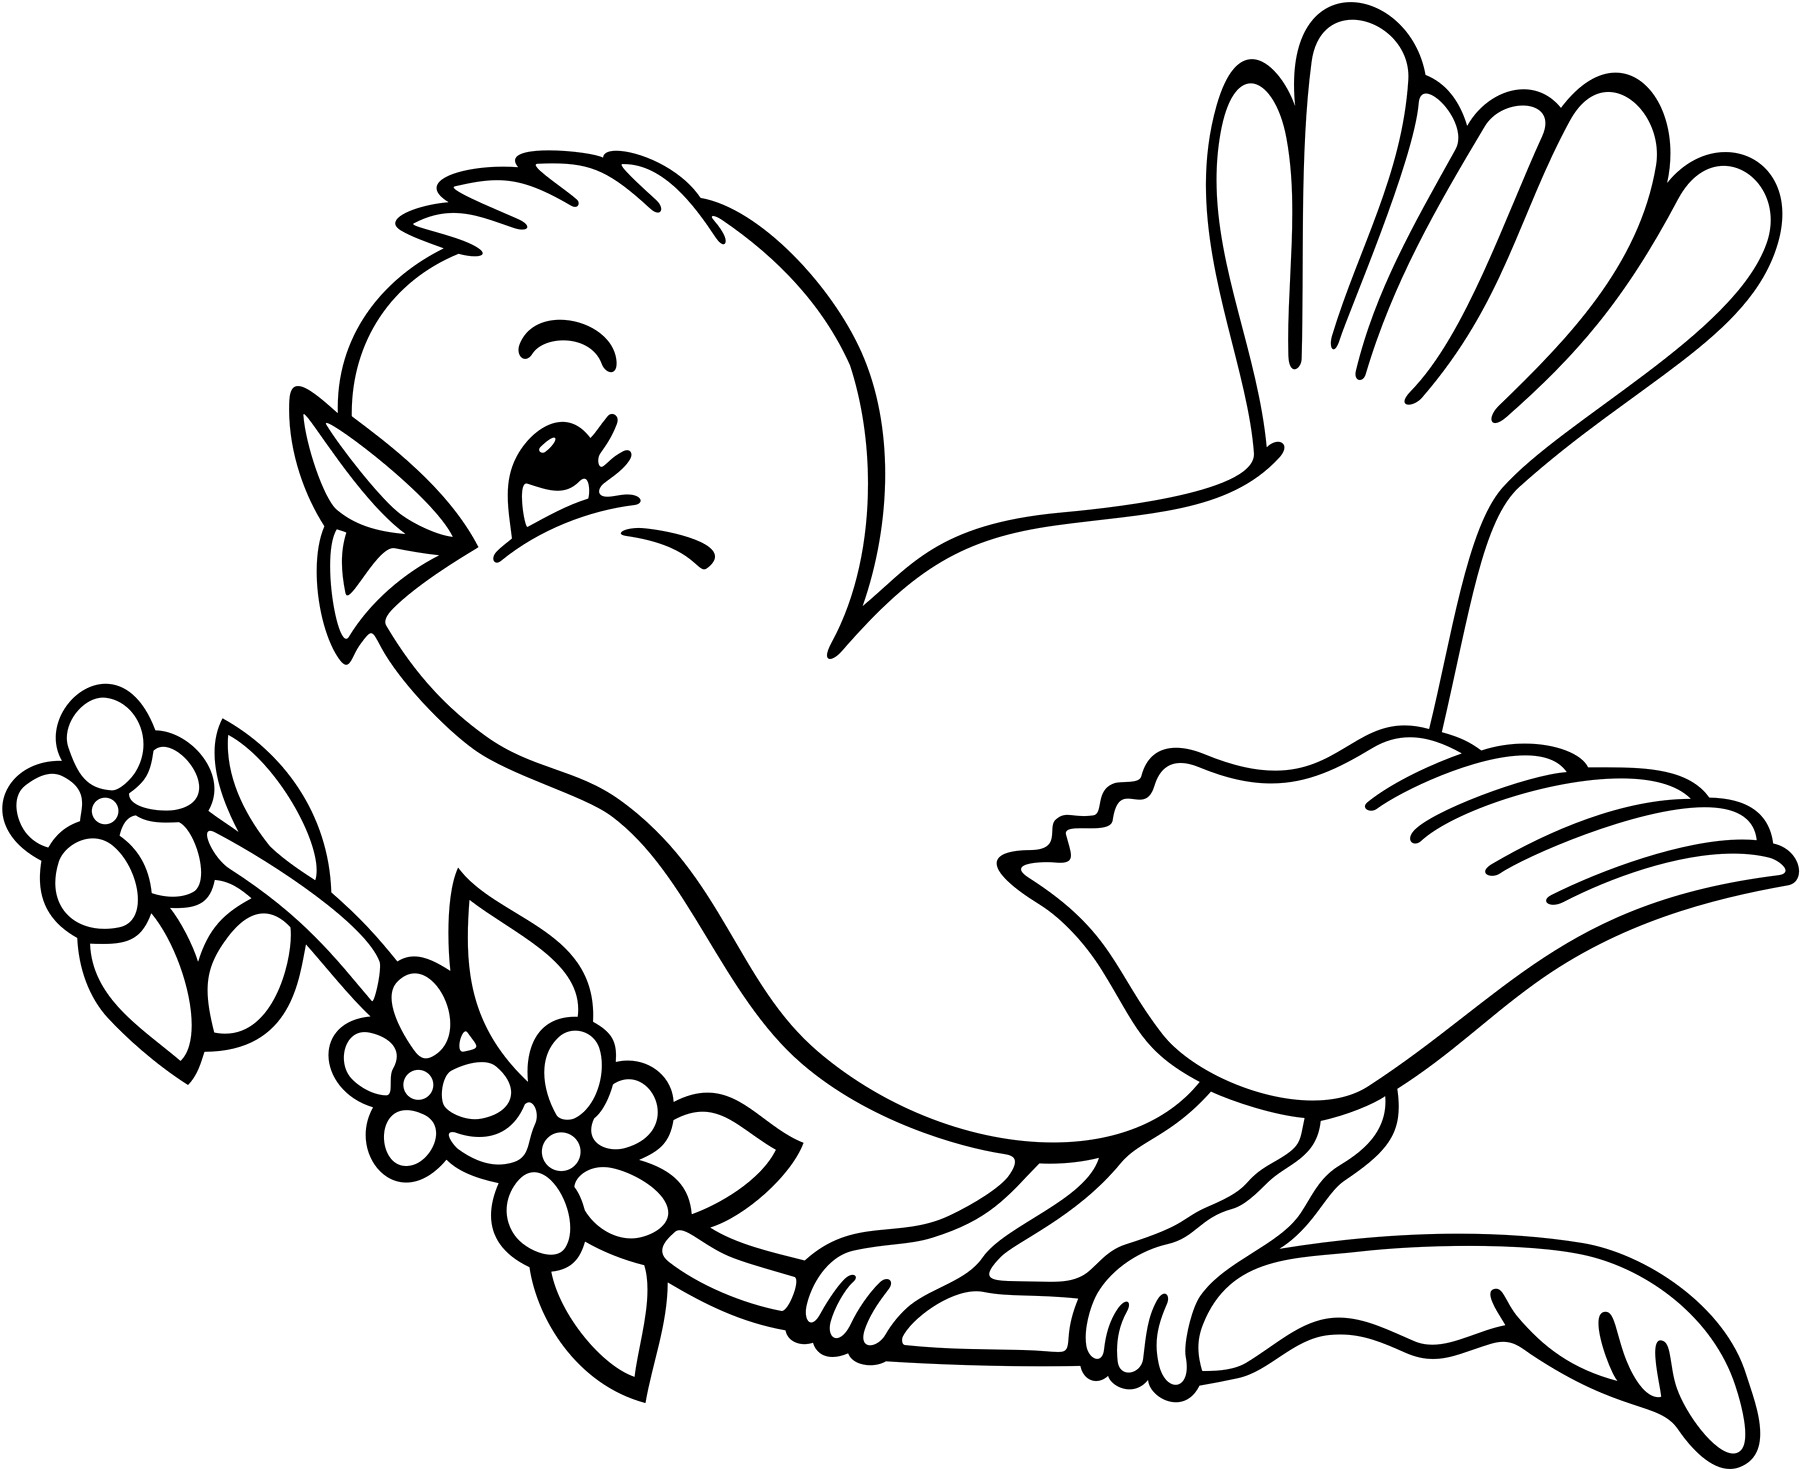 1802x1471 Awesome Chicken Coloring Pages Preschool The Ideas Of Coloring